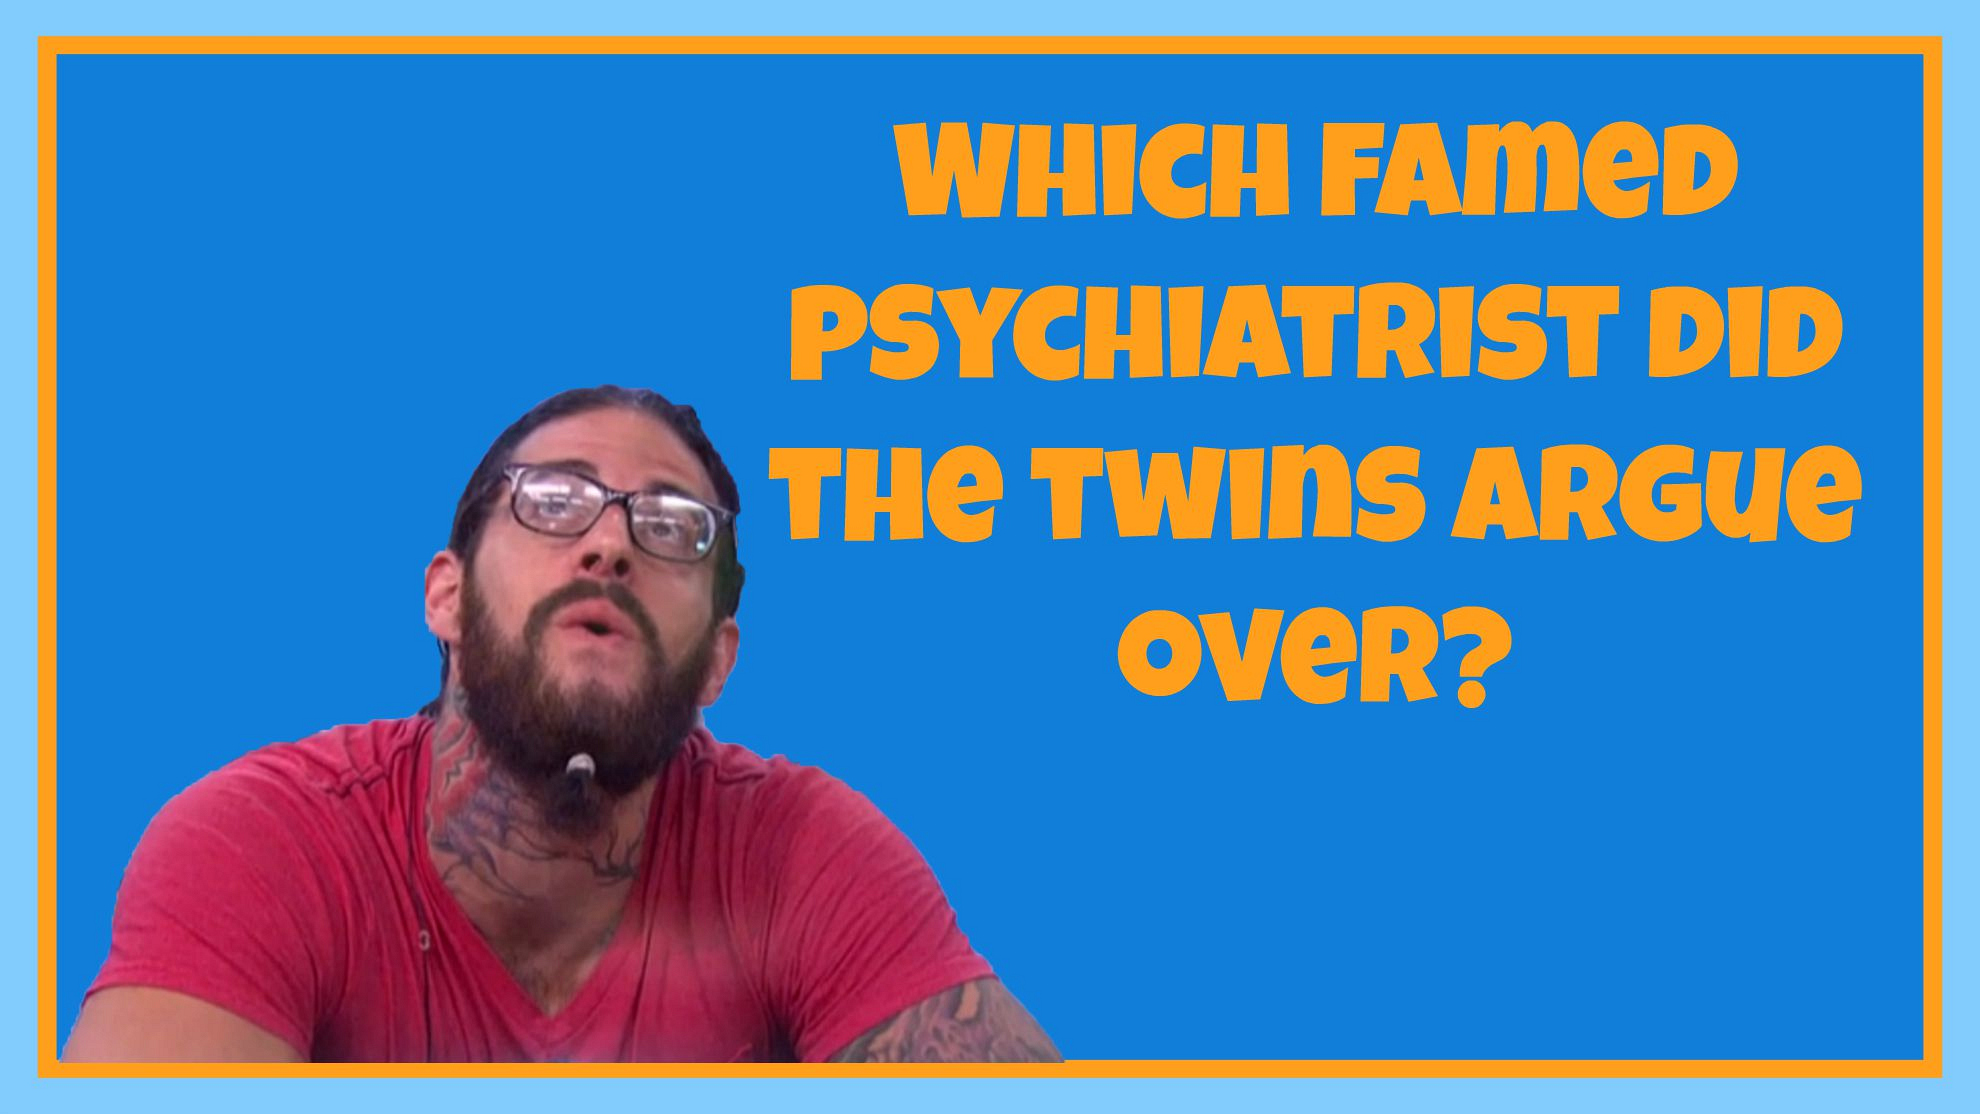 Which famed psychiatrist did the twins argue over?